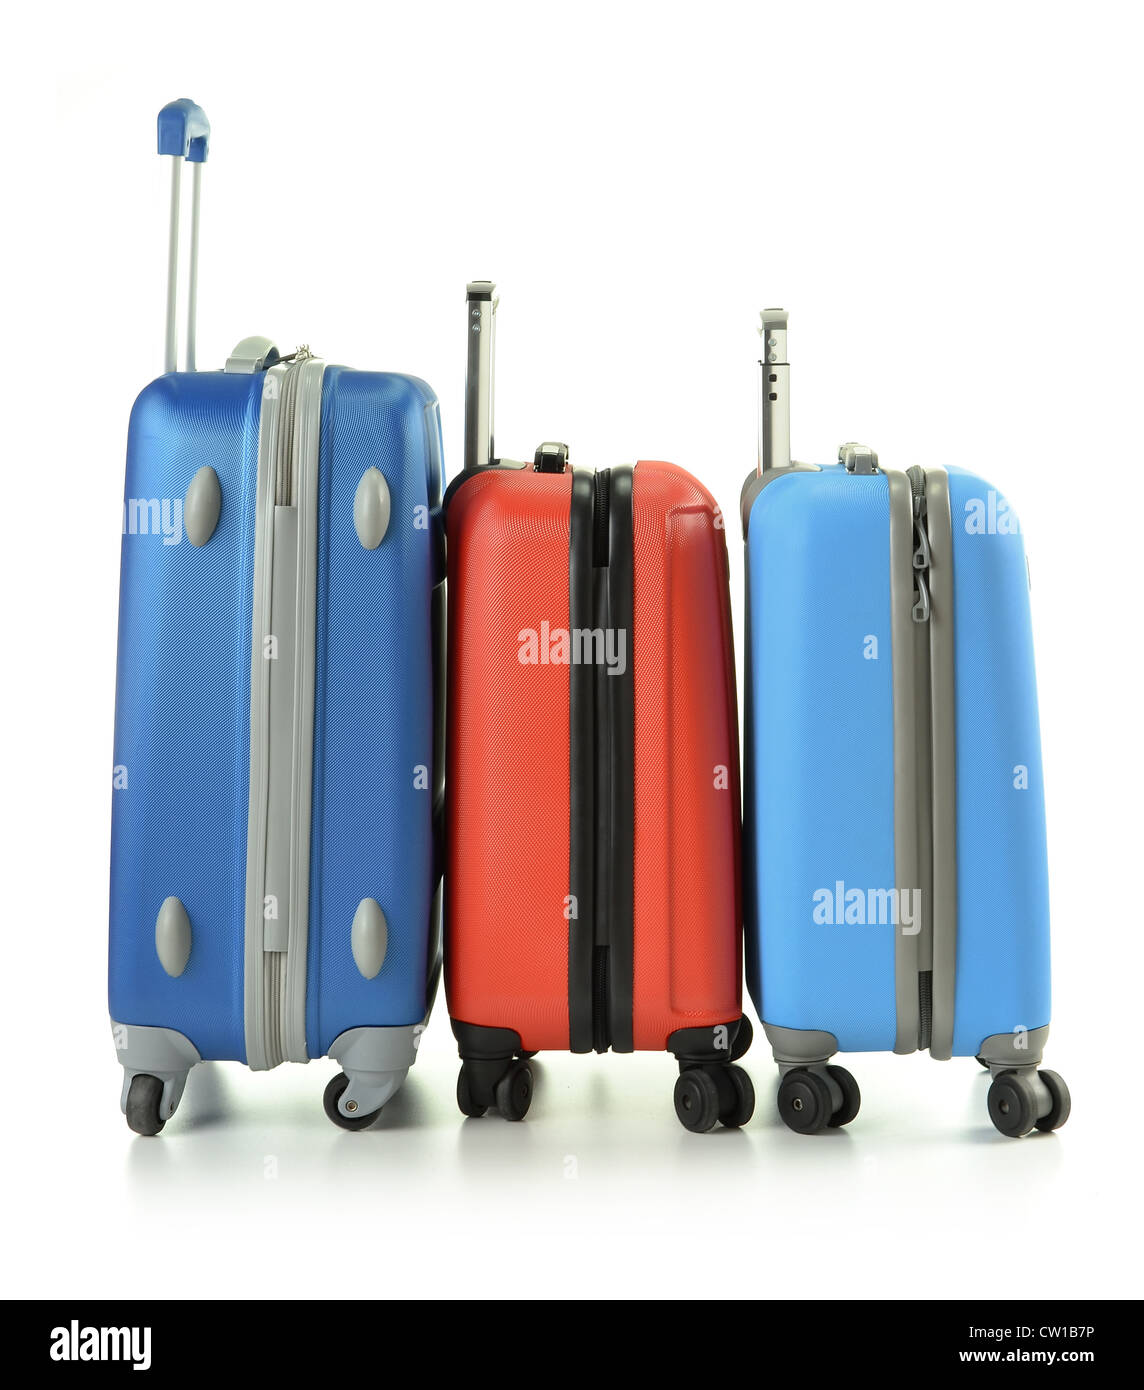 Luggage consisting of suitcases isolated on white - Stock Image